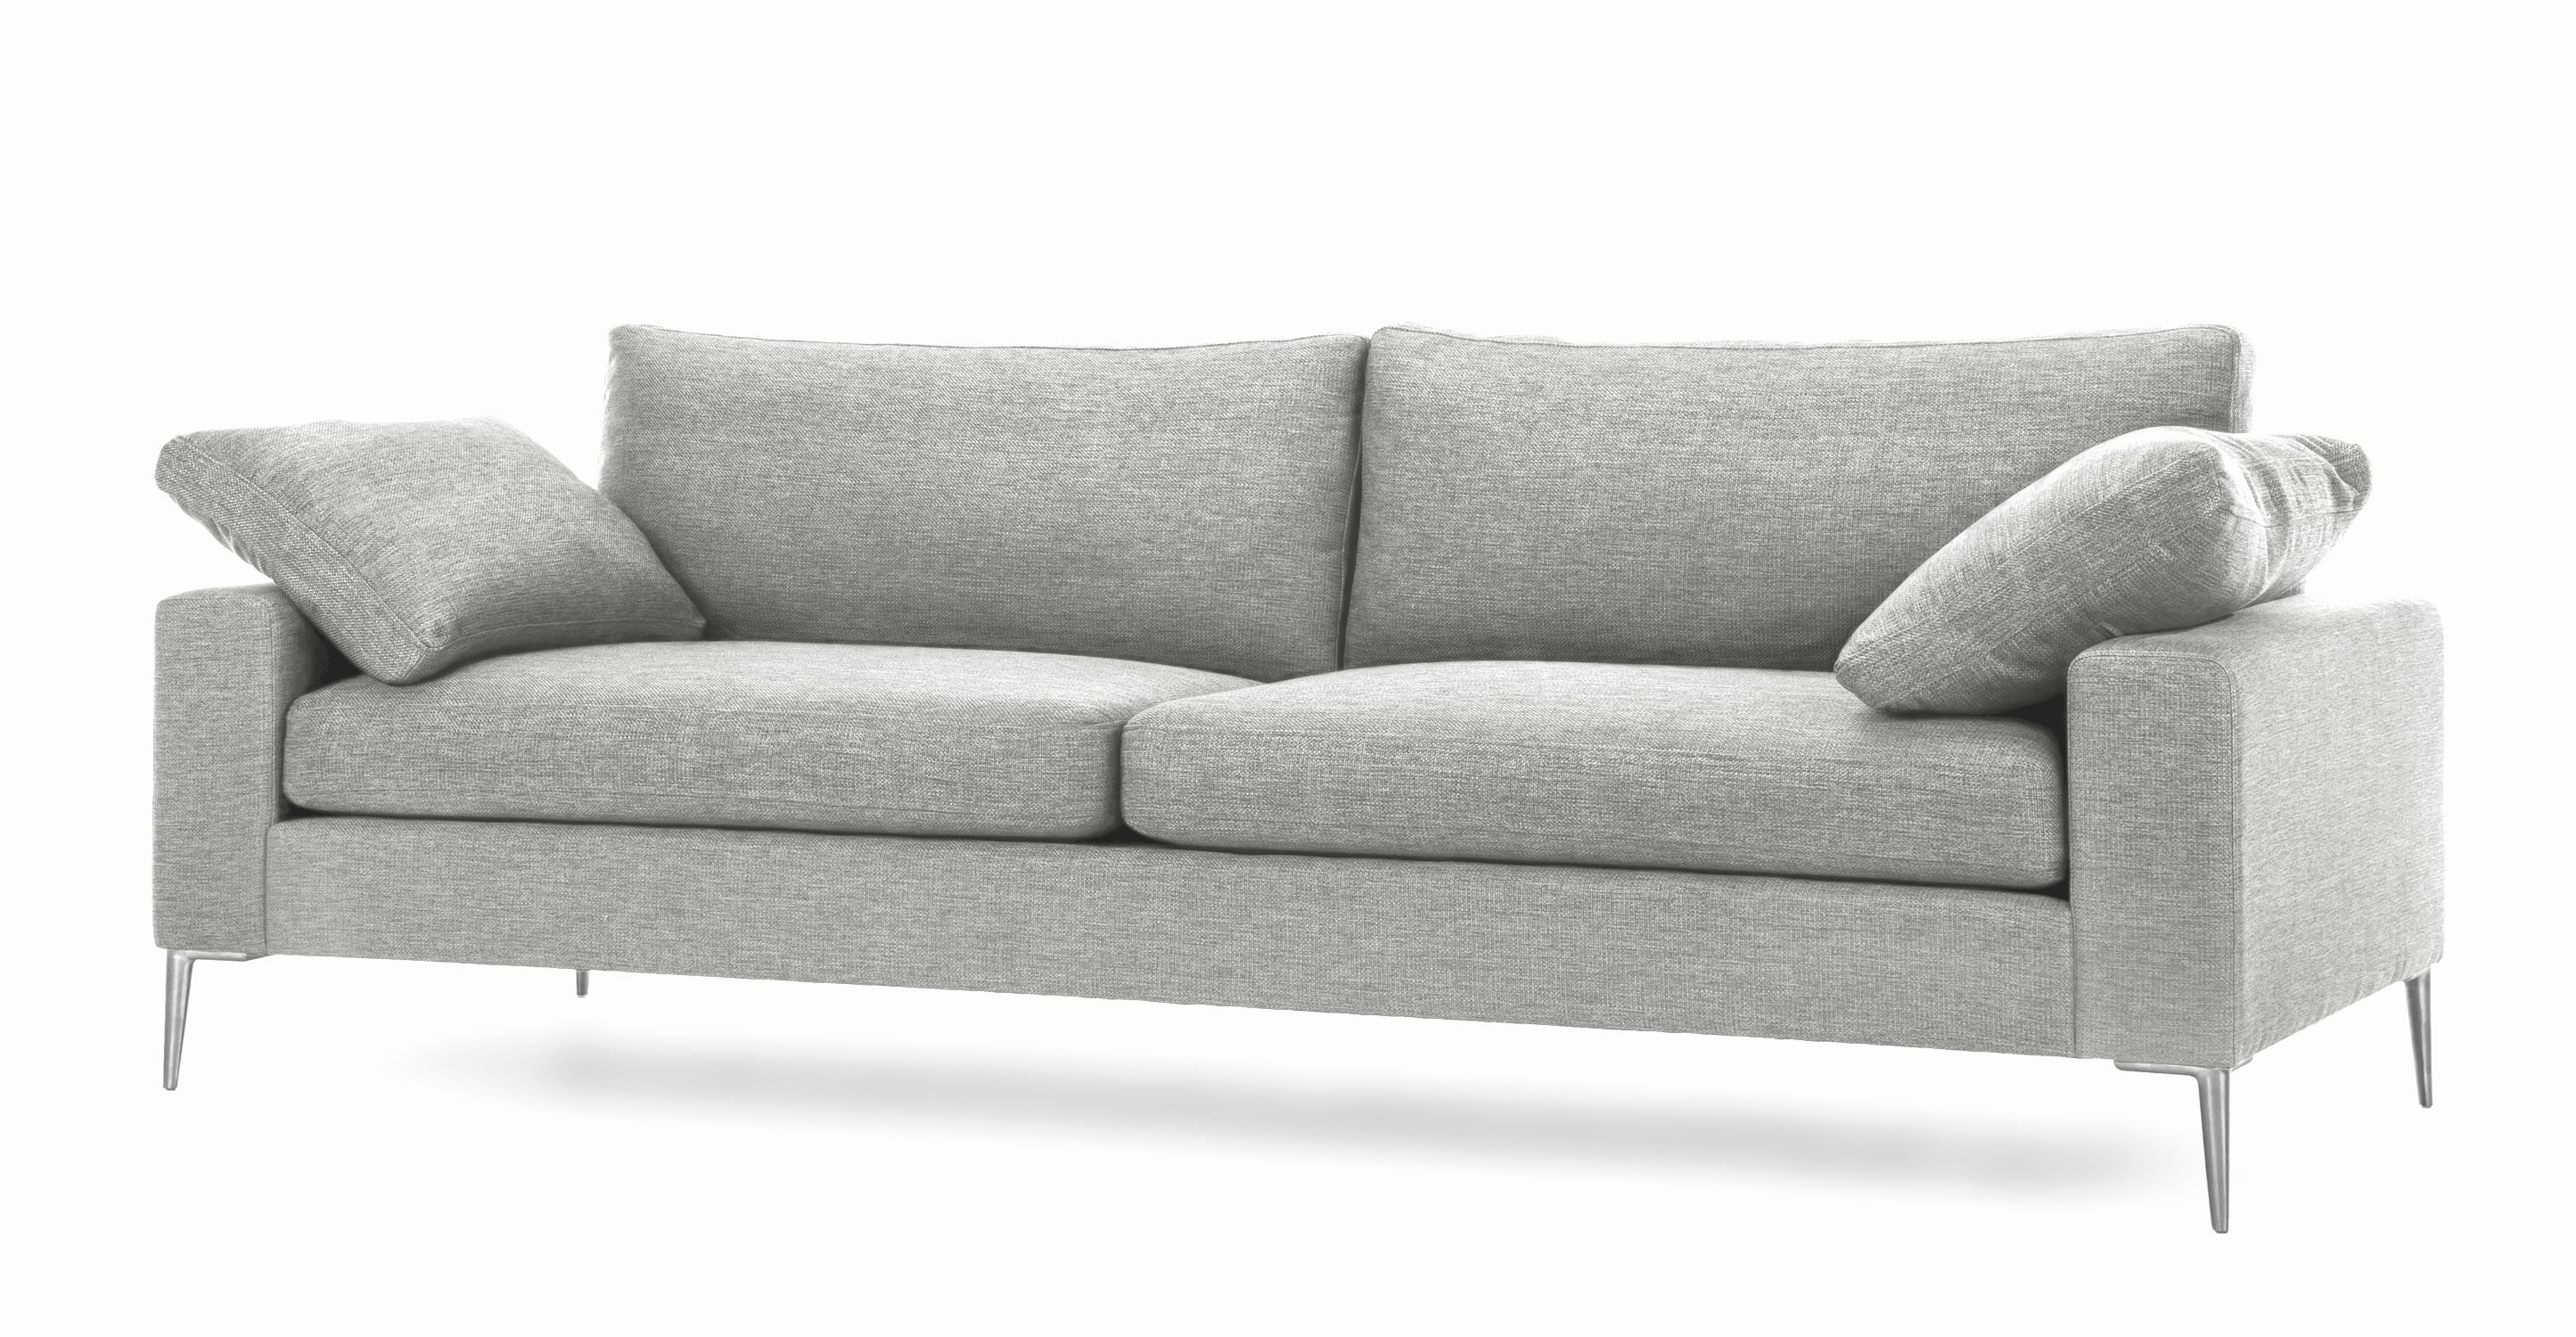 Inspirational Modern Gray Sofa Photographs Modern Gray Sofa Fresh Modern Grey Sofa Awesome Light Gray Sofa 3 Seater Modern Grey Sofa Light Gray Sofas Gray Sofa